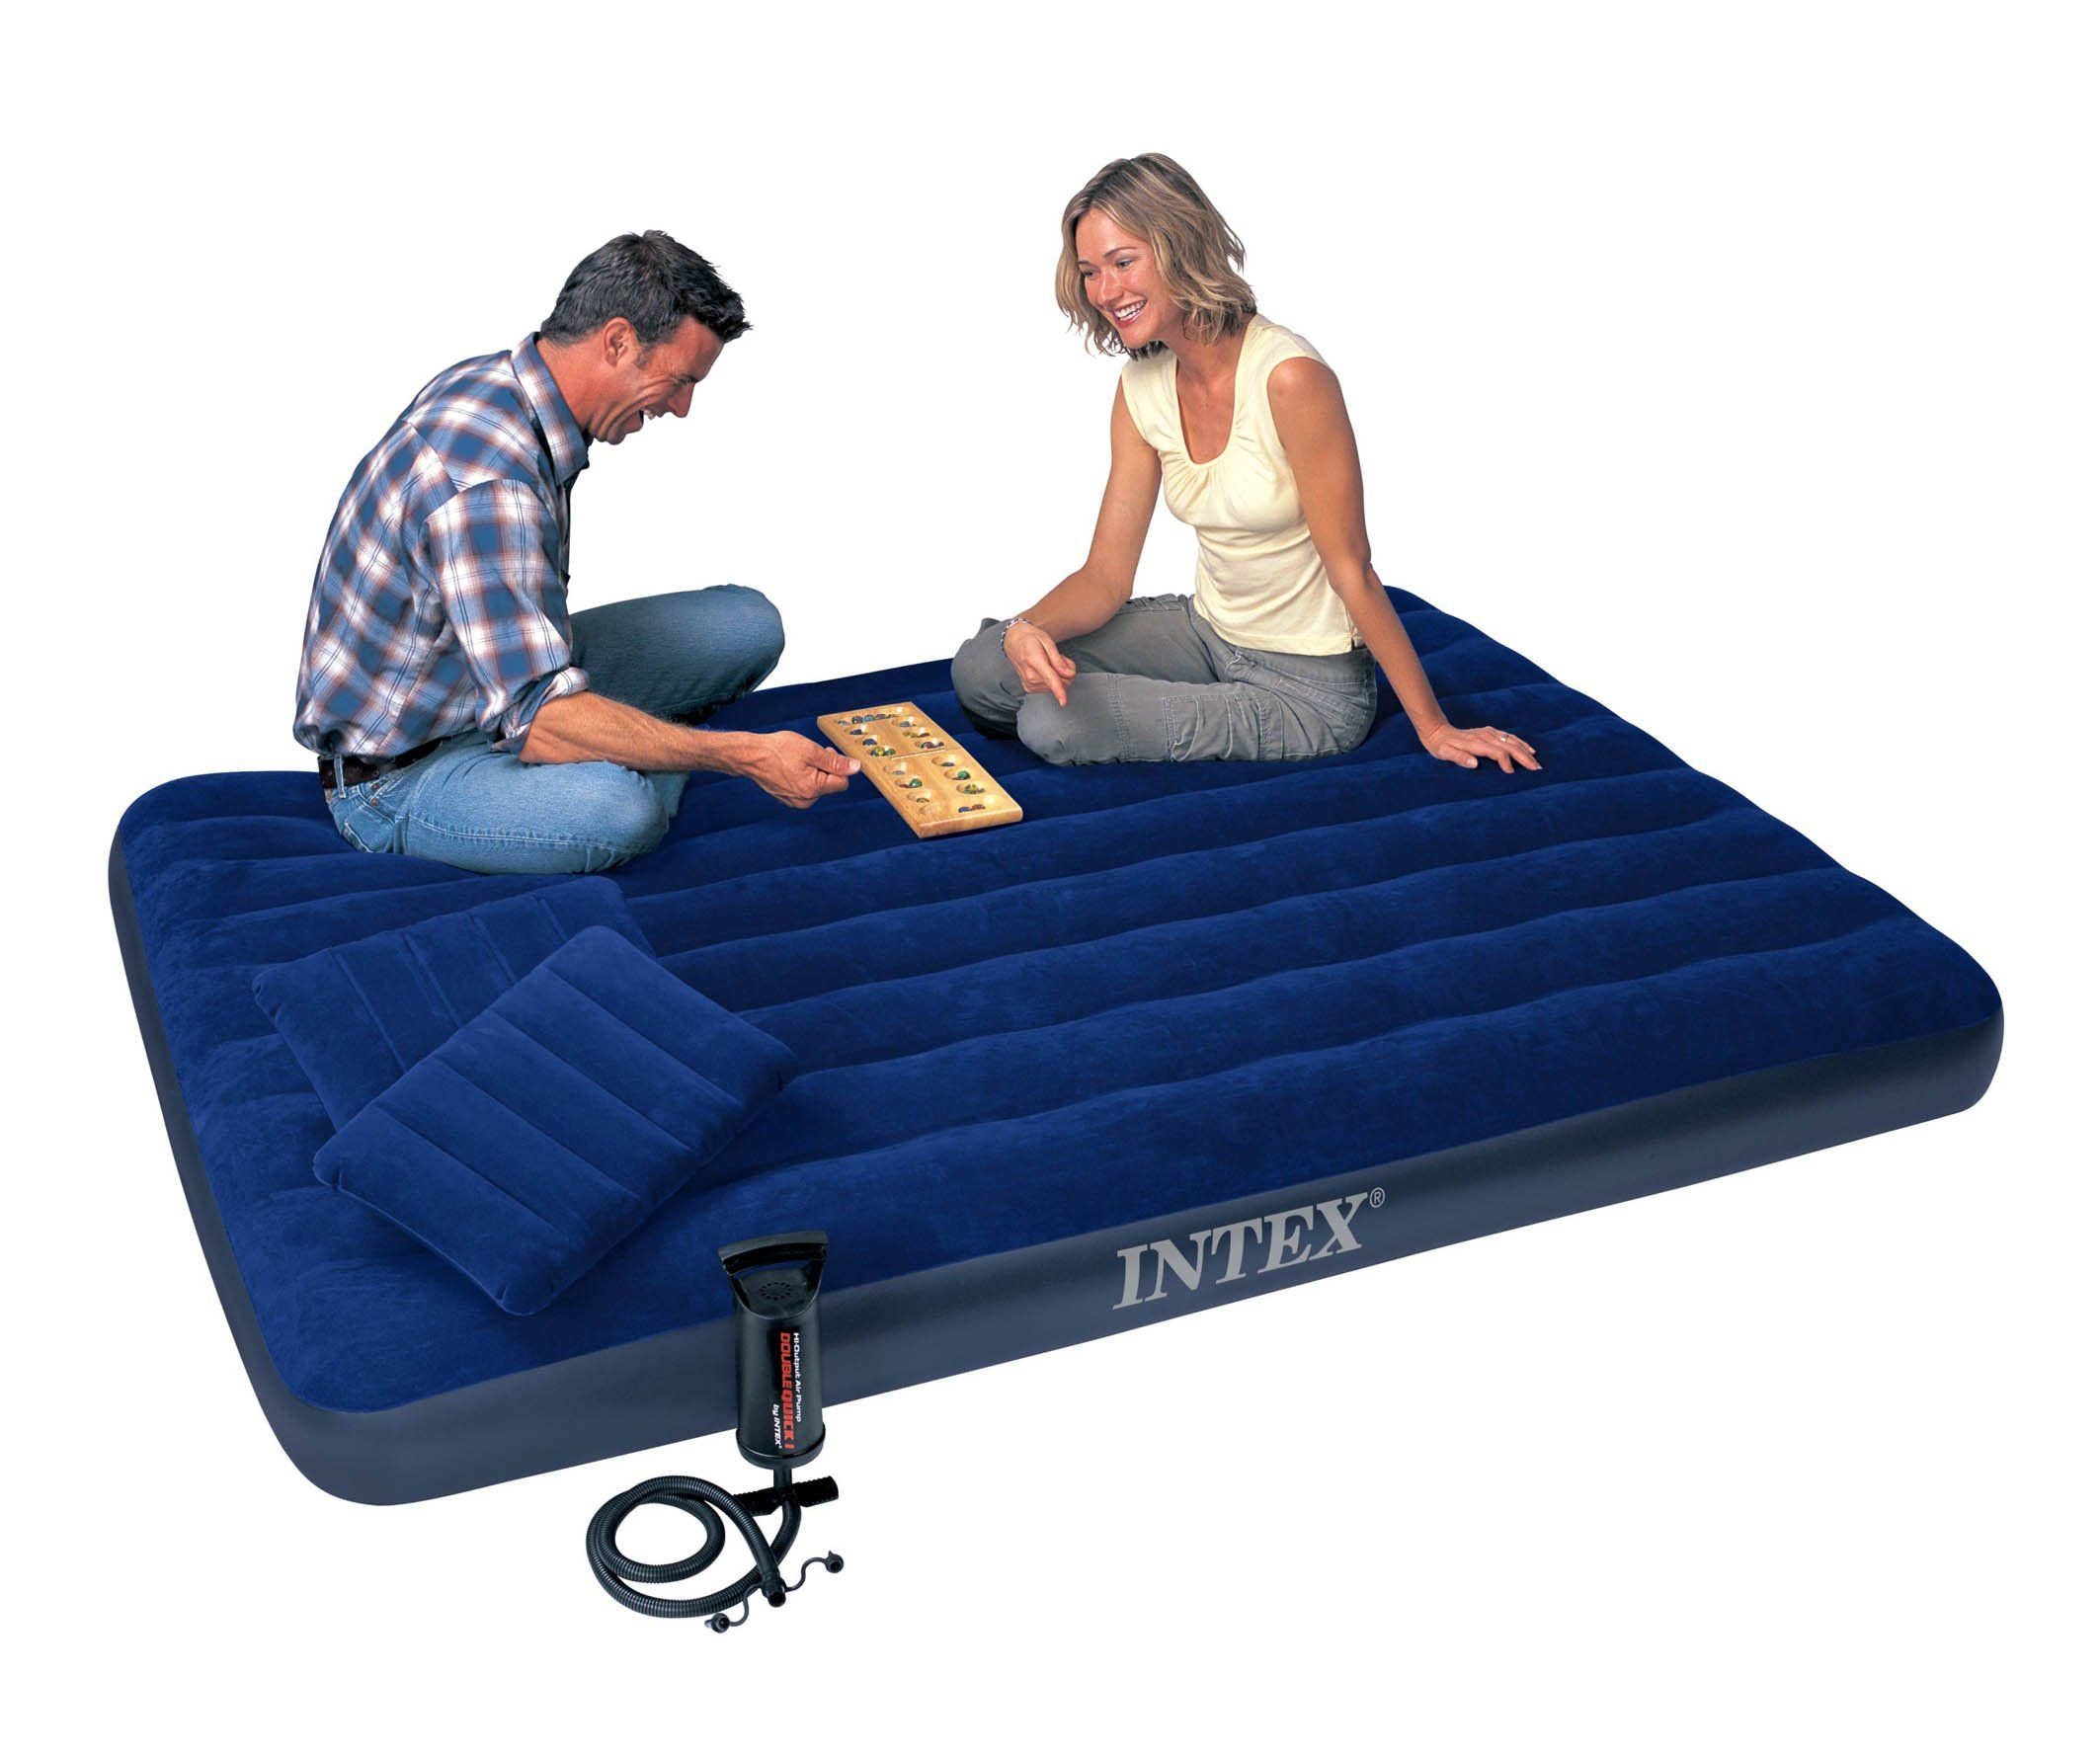 Amazon Com Intex Classic Downy Airbed Set With 2 Pillows And Double Quick Hand Pump Queen Camping Air Air Mattress Camping Air Bed Camping Queen Mattress